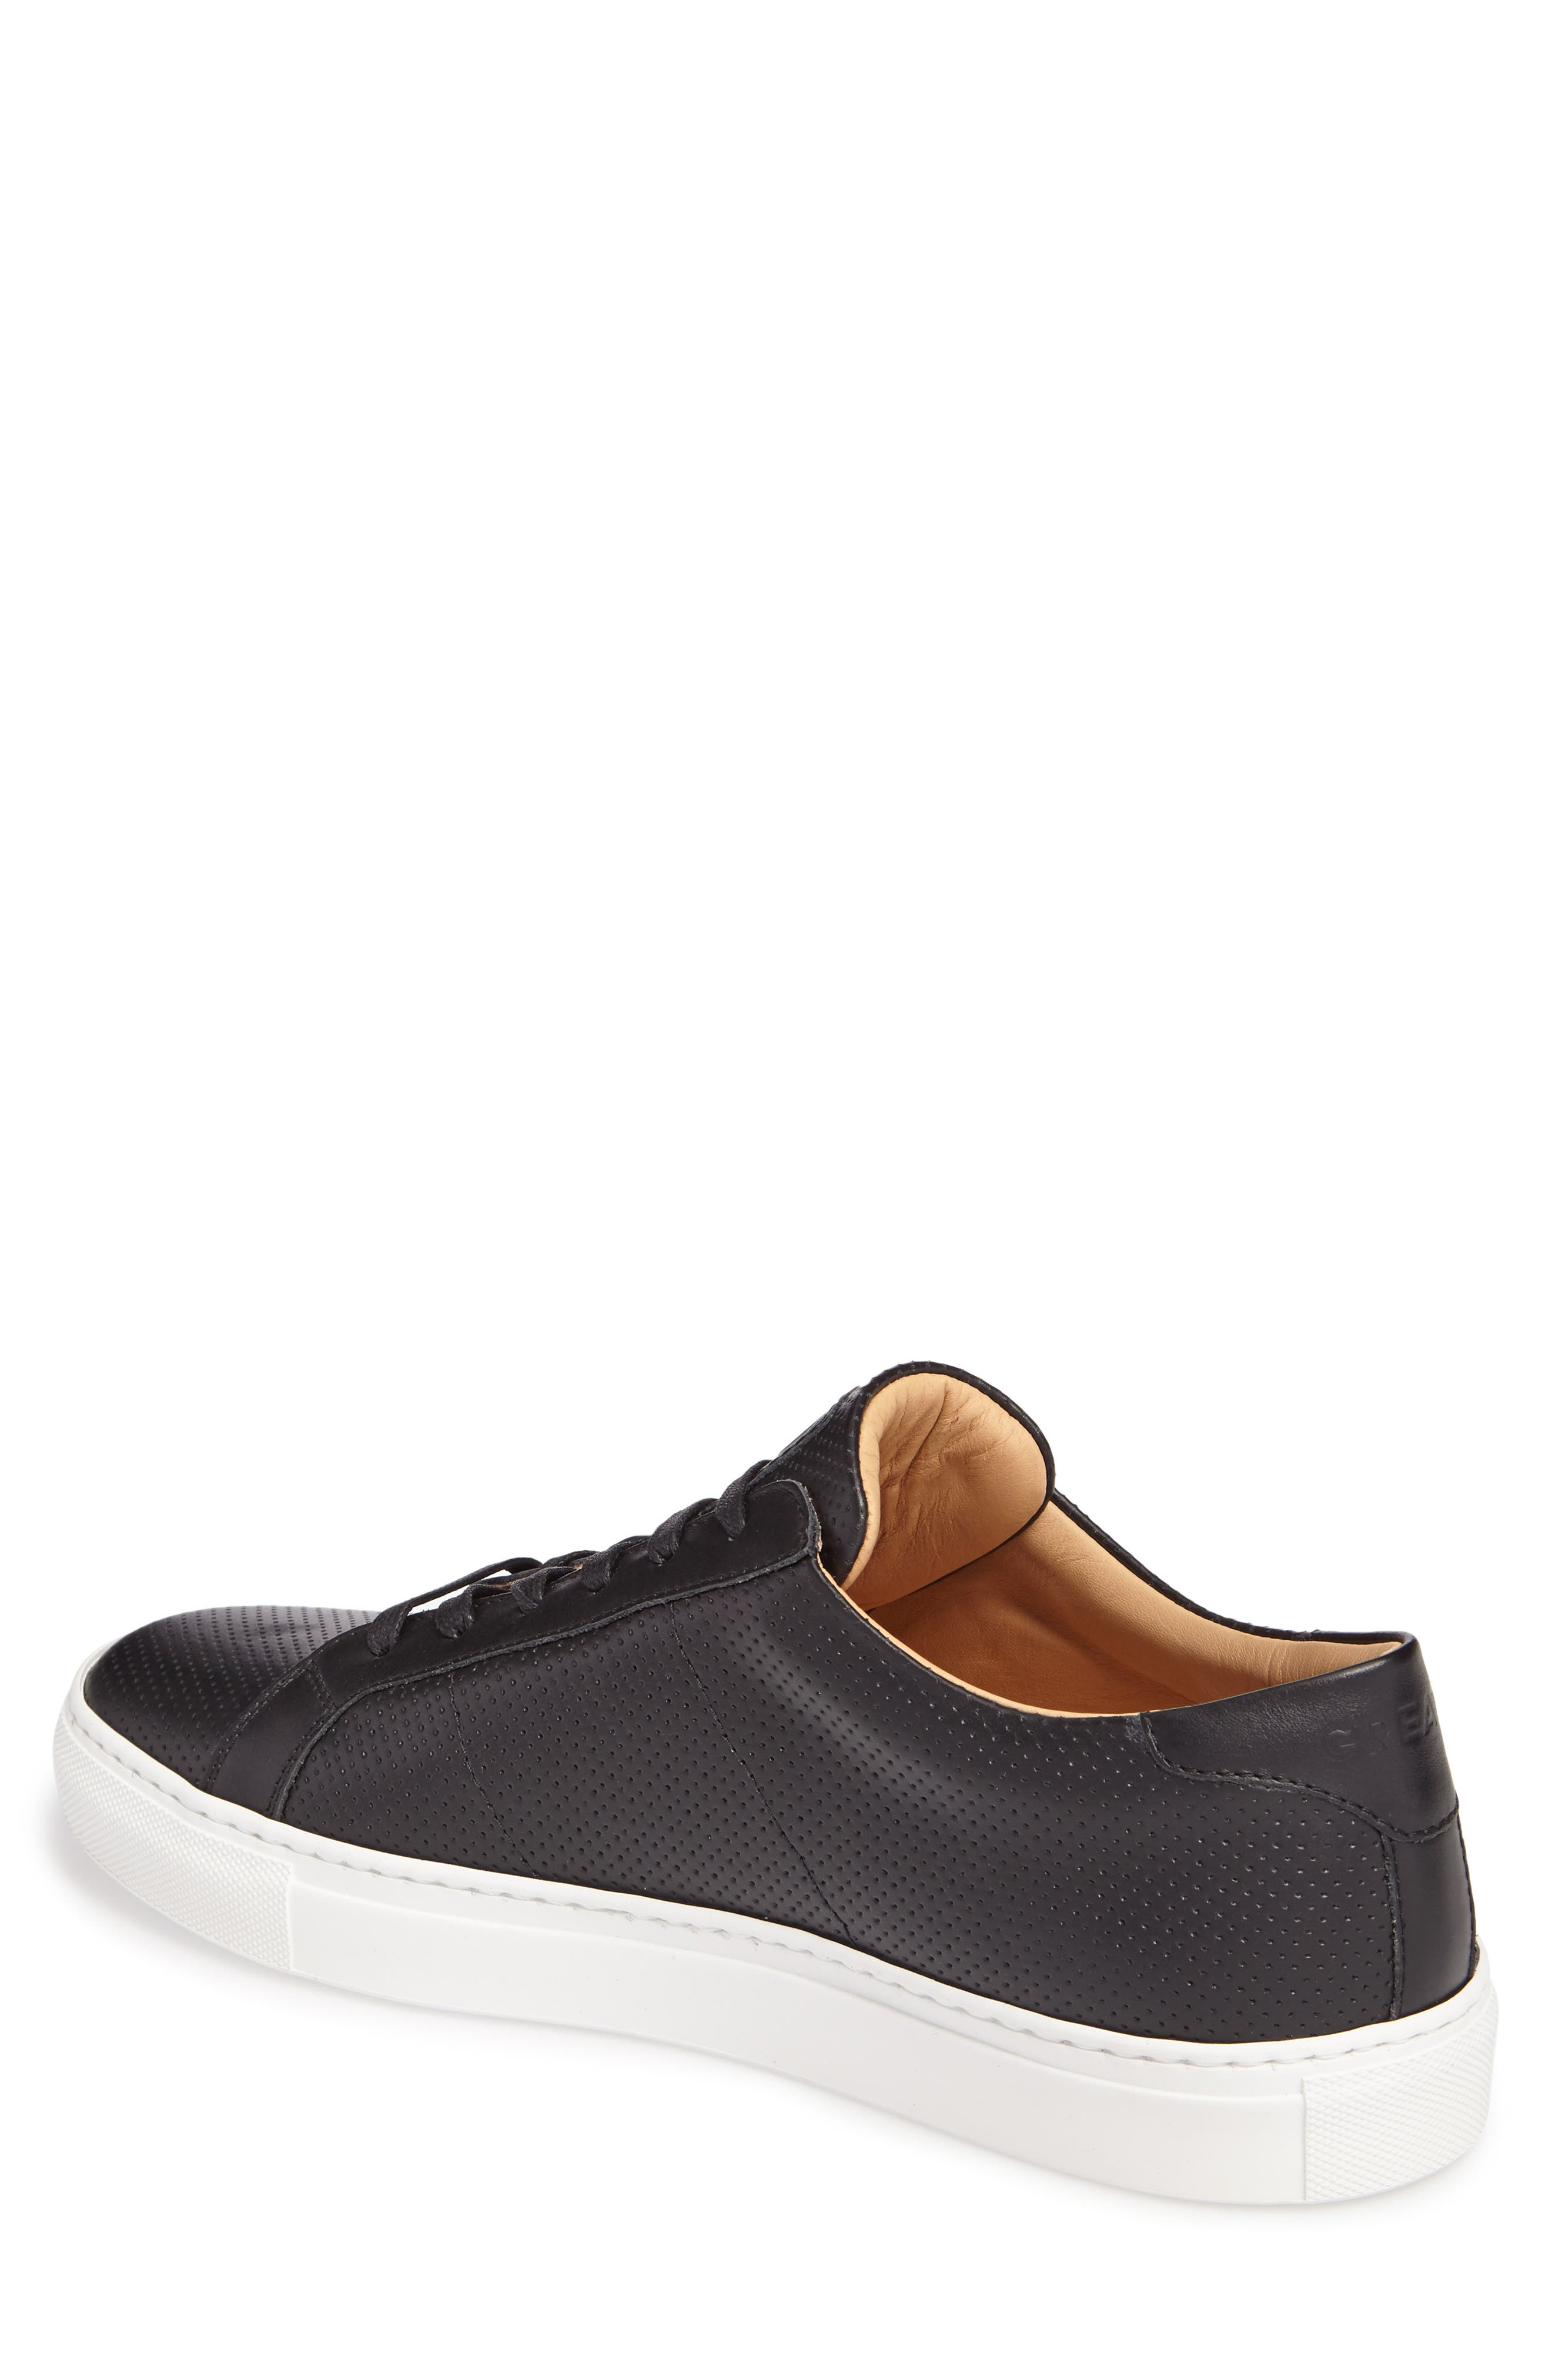 Royale Perforated Low Top Sneaker,                             Alternate thumbnail 2, color,                             001